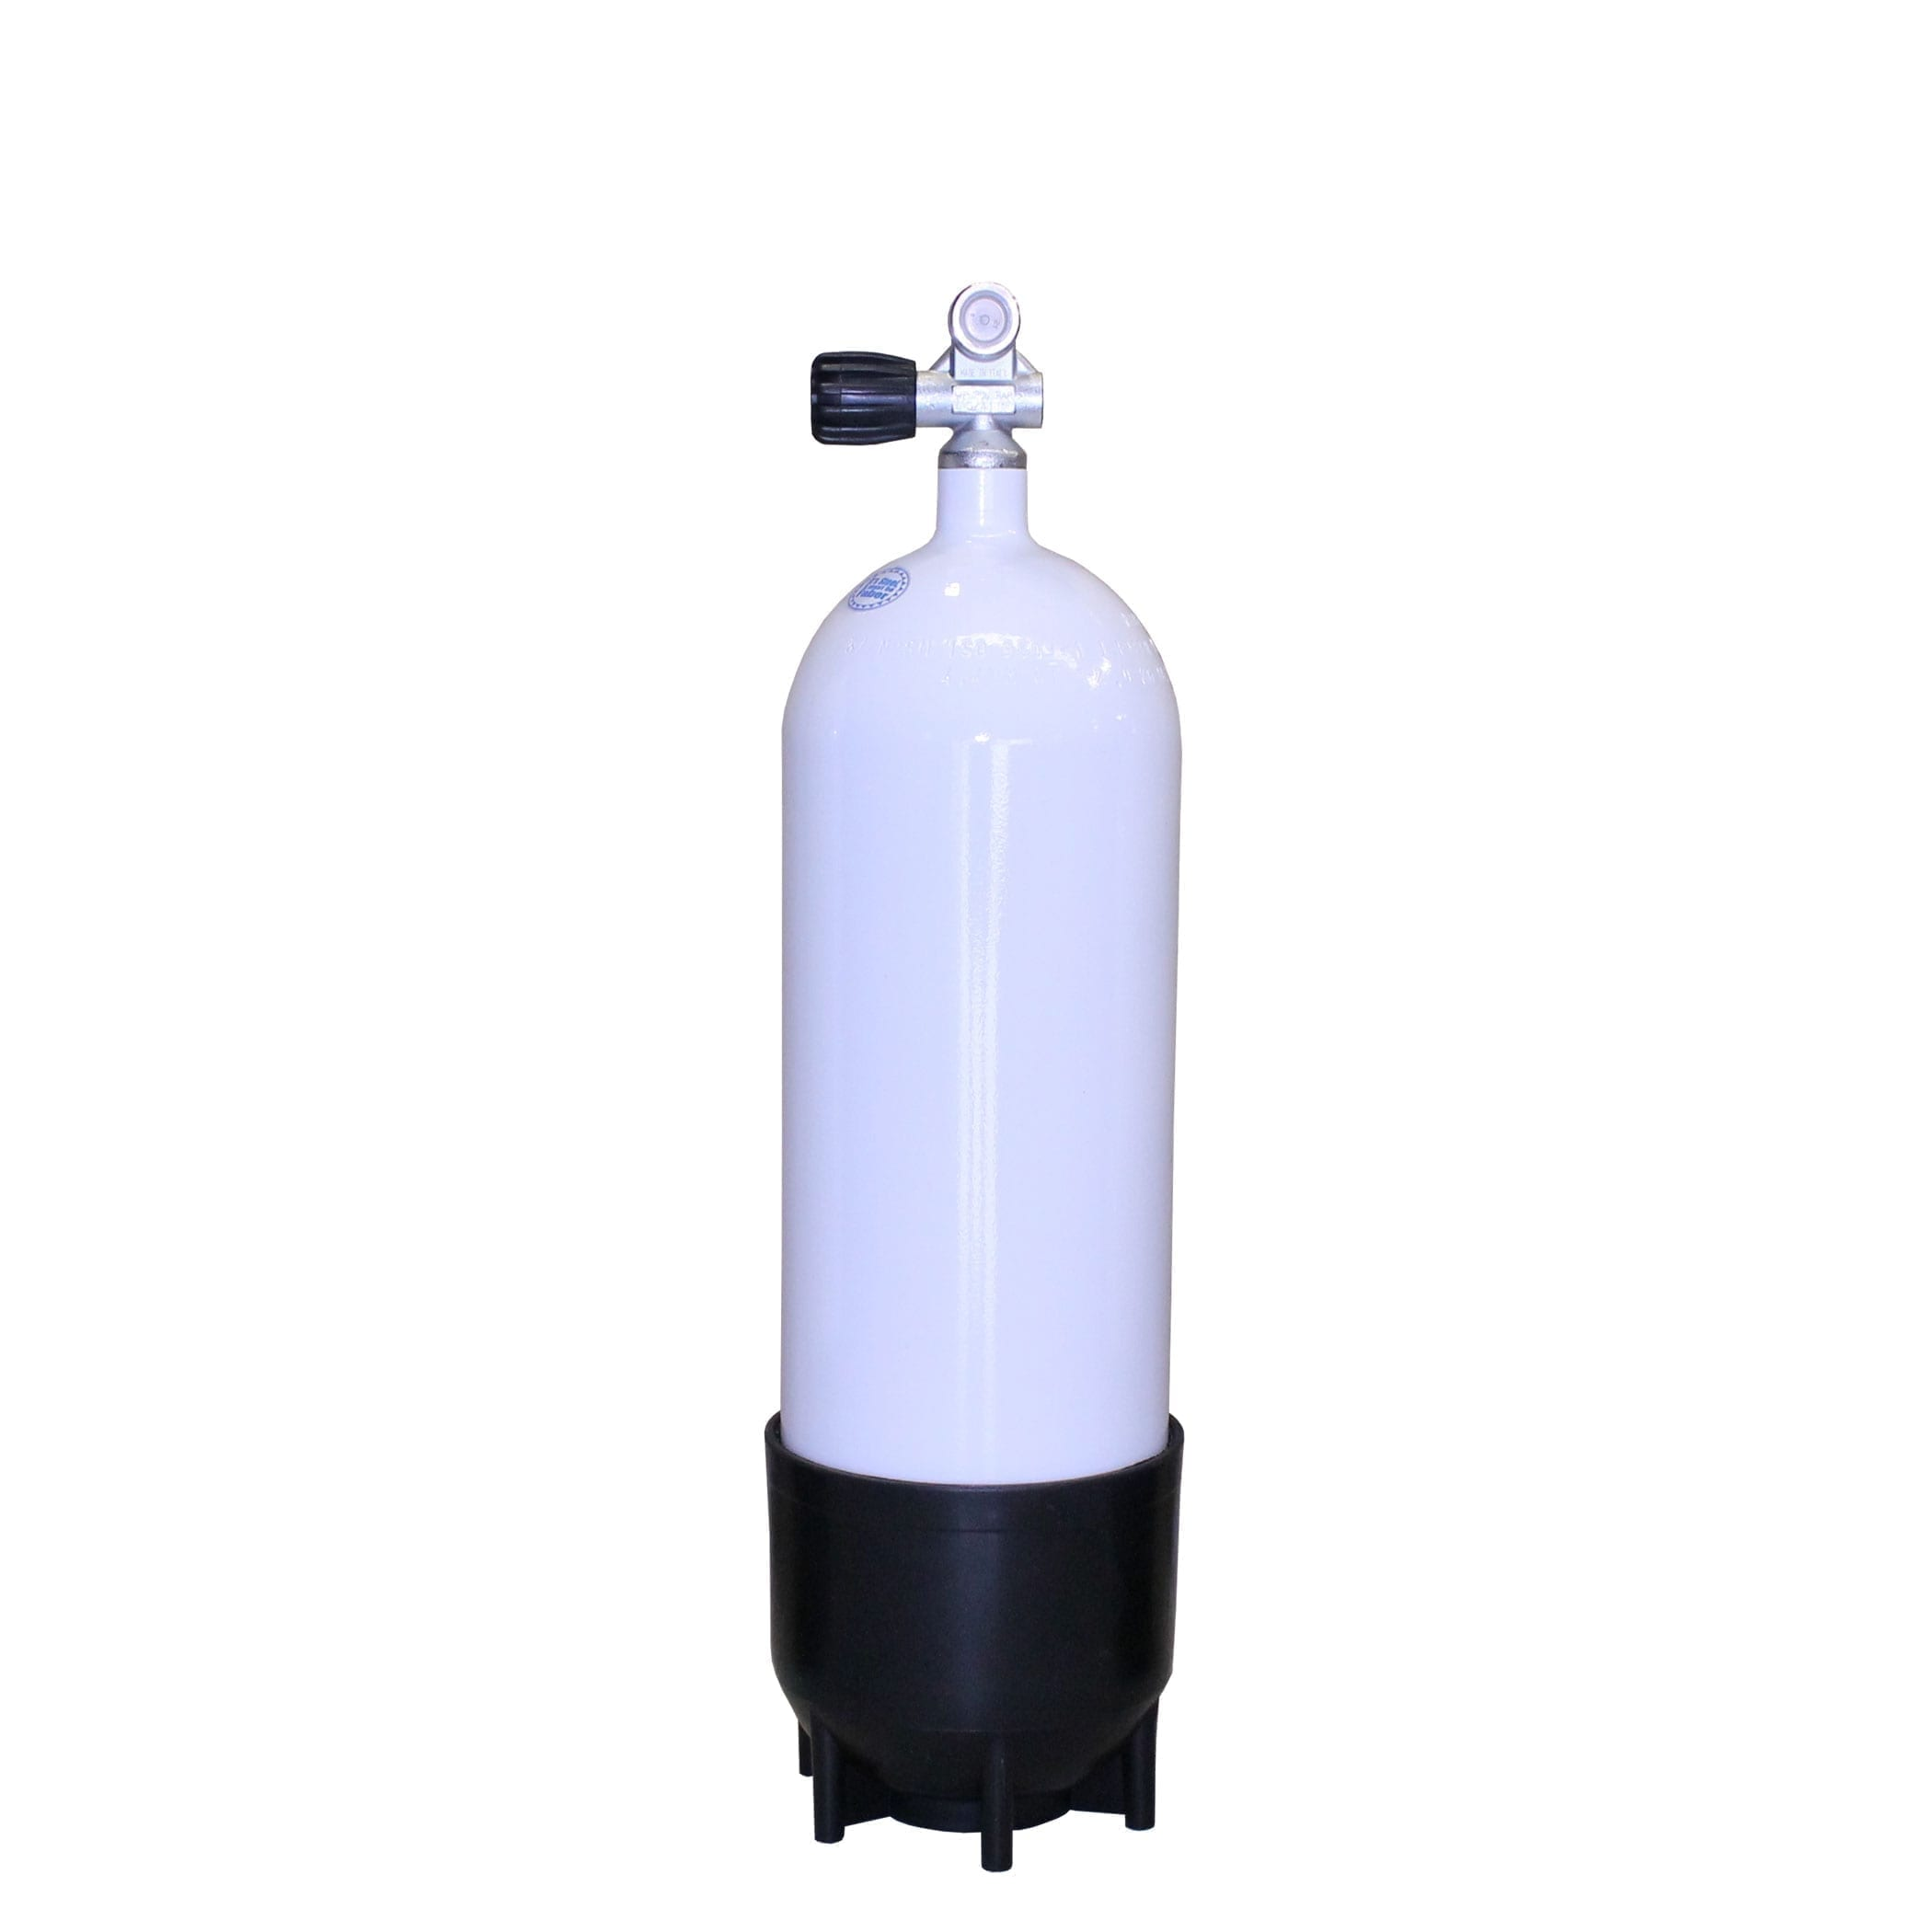 Faber-Cylinder-Steel-Diving-Tank-10.5-liter-232-bar